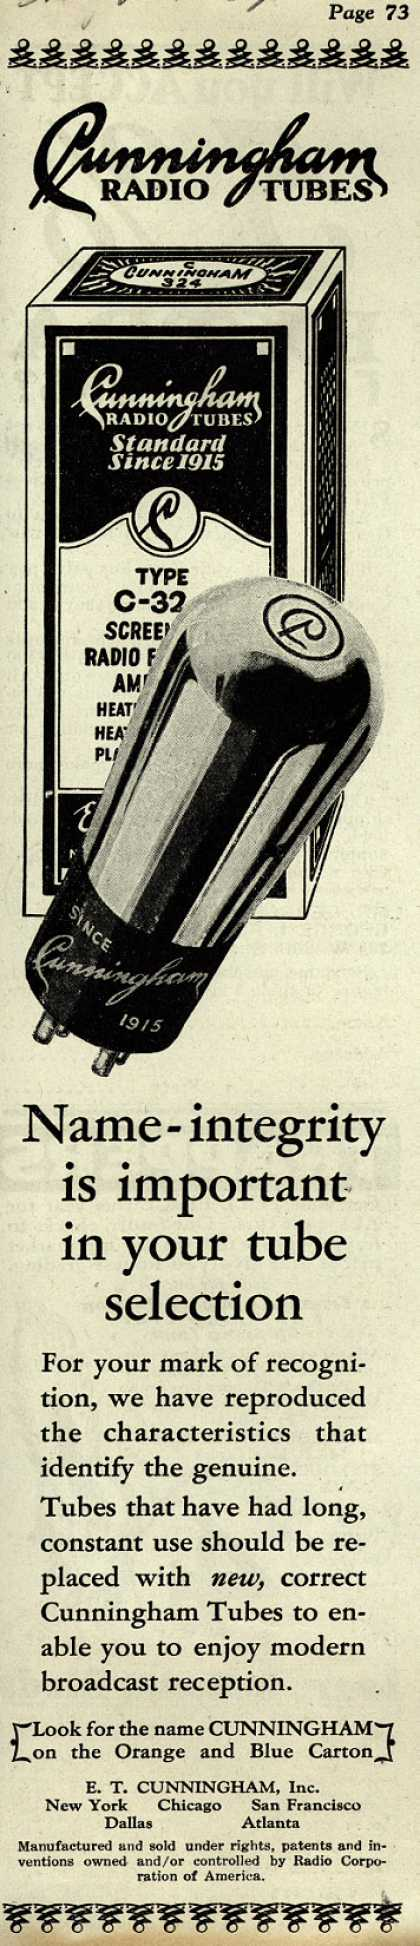 E.T. Cunningham's Radio Tubes – Name-integrity is important in your tube selection (1929)